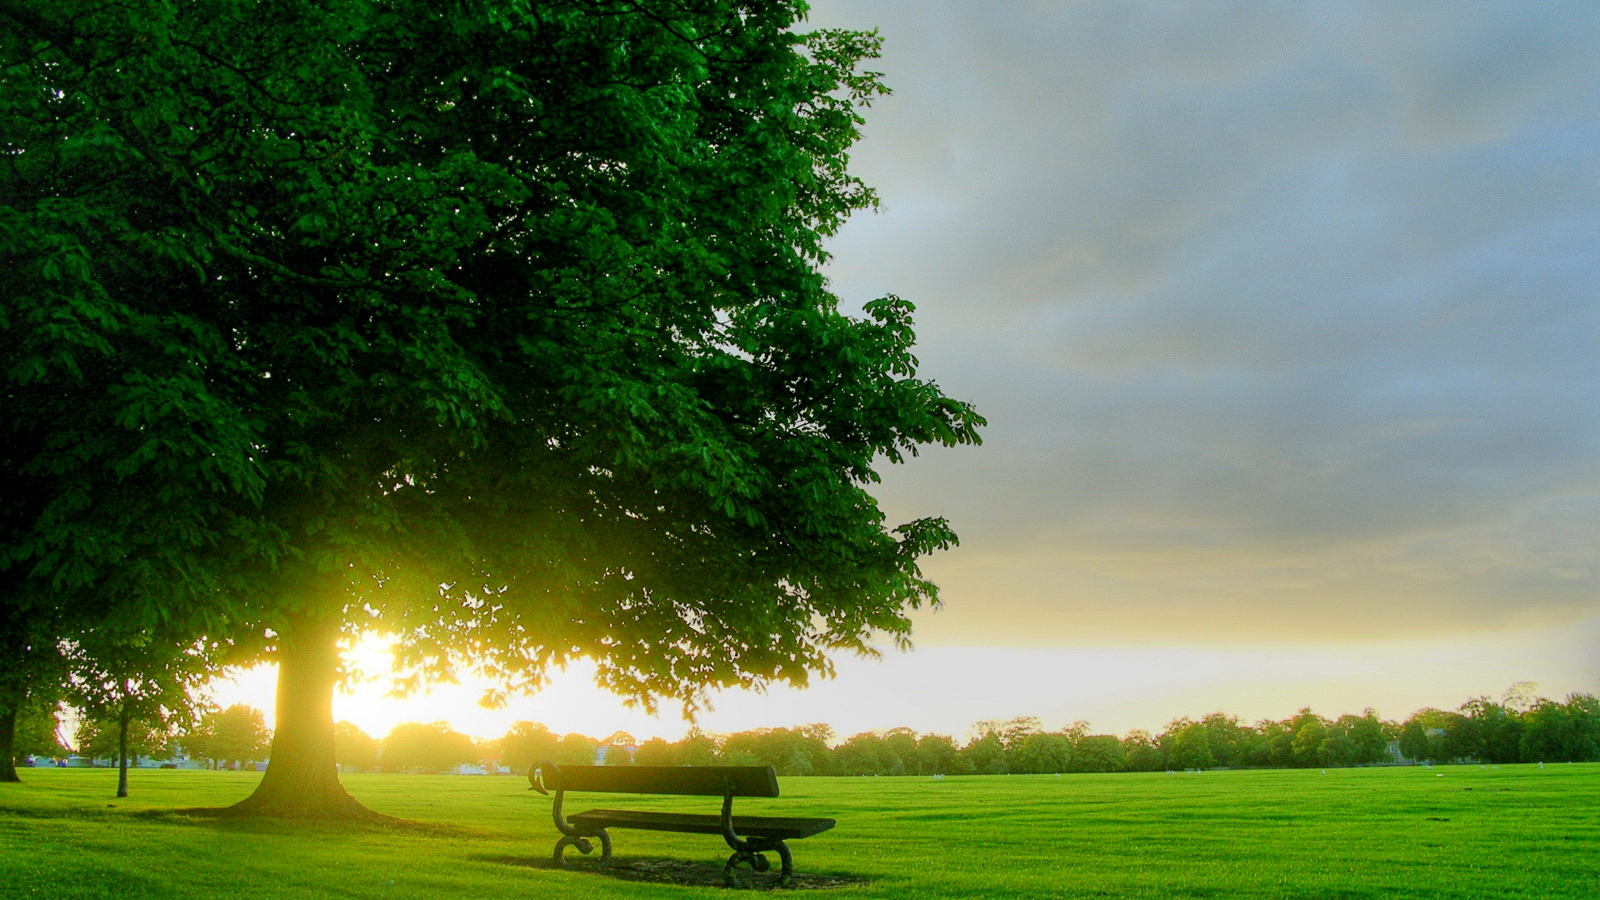 Hd Wallpapers Hd Backgrounds: Central Wallpaper: Empty Benches HD Wallpapers